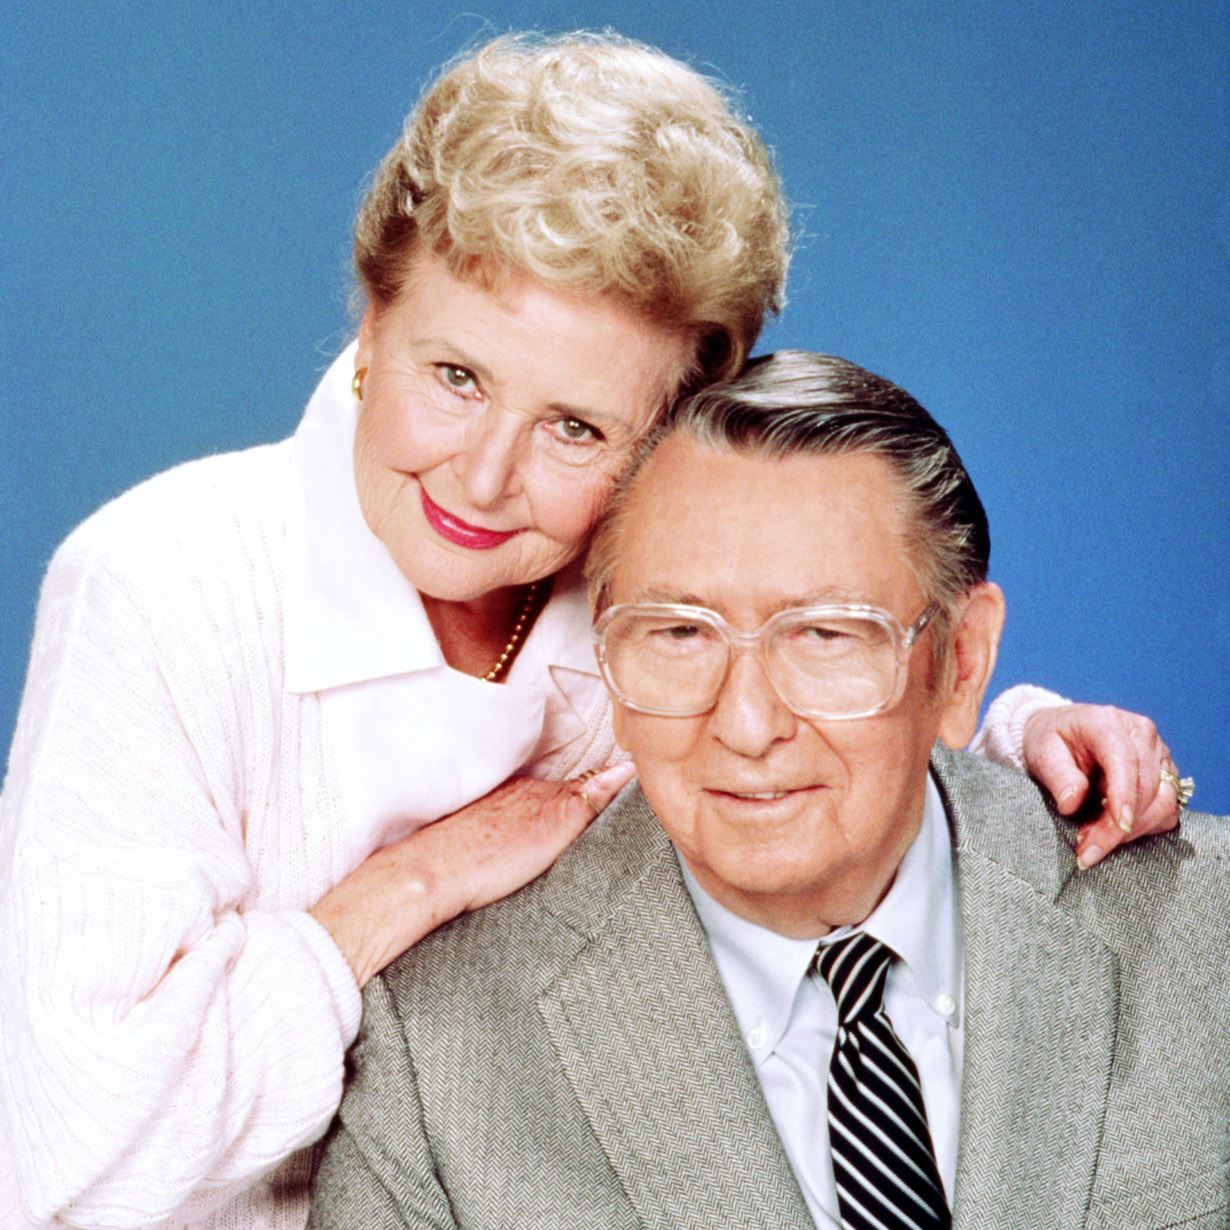 DAYS OF OUR LIVES tom alice Frances Reid, Macdonald Carey, 1965-, photo: © NBC / Courtesy: Everett Collection